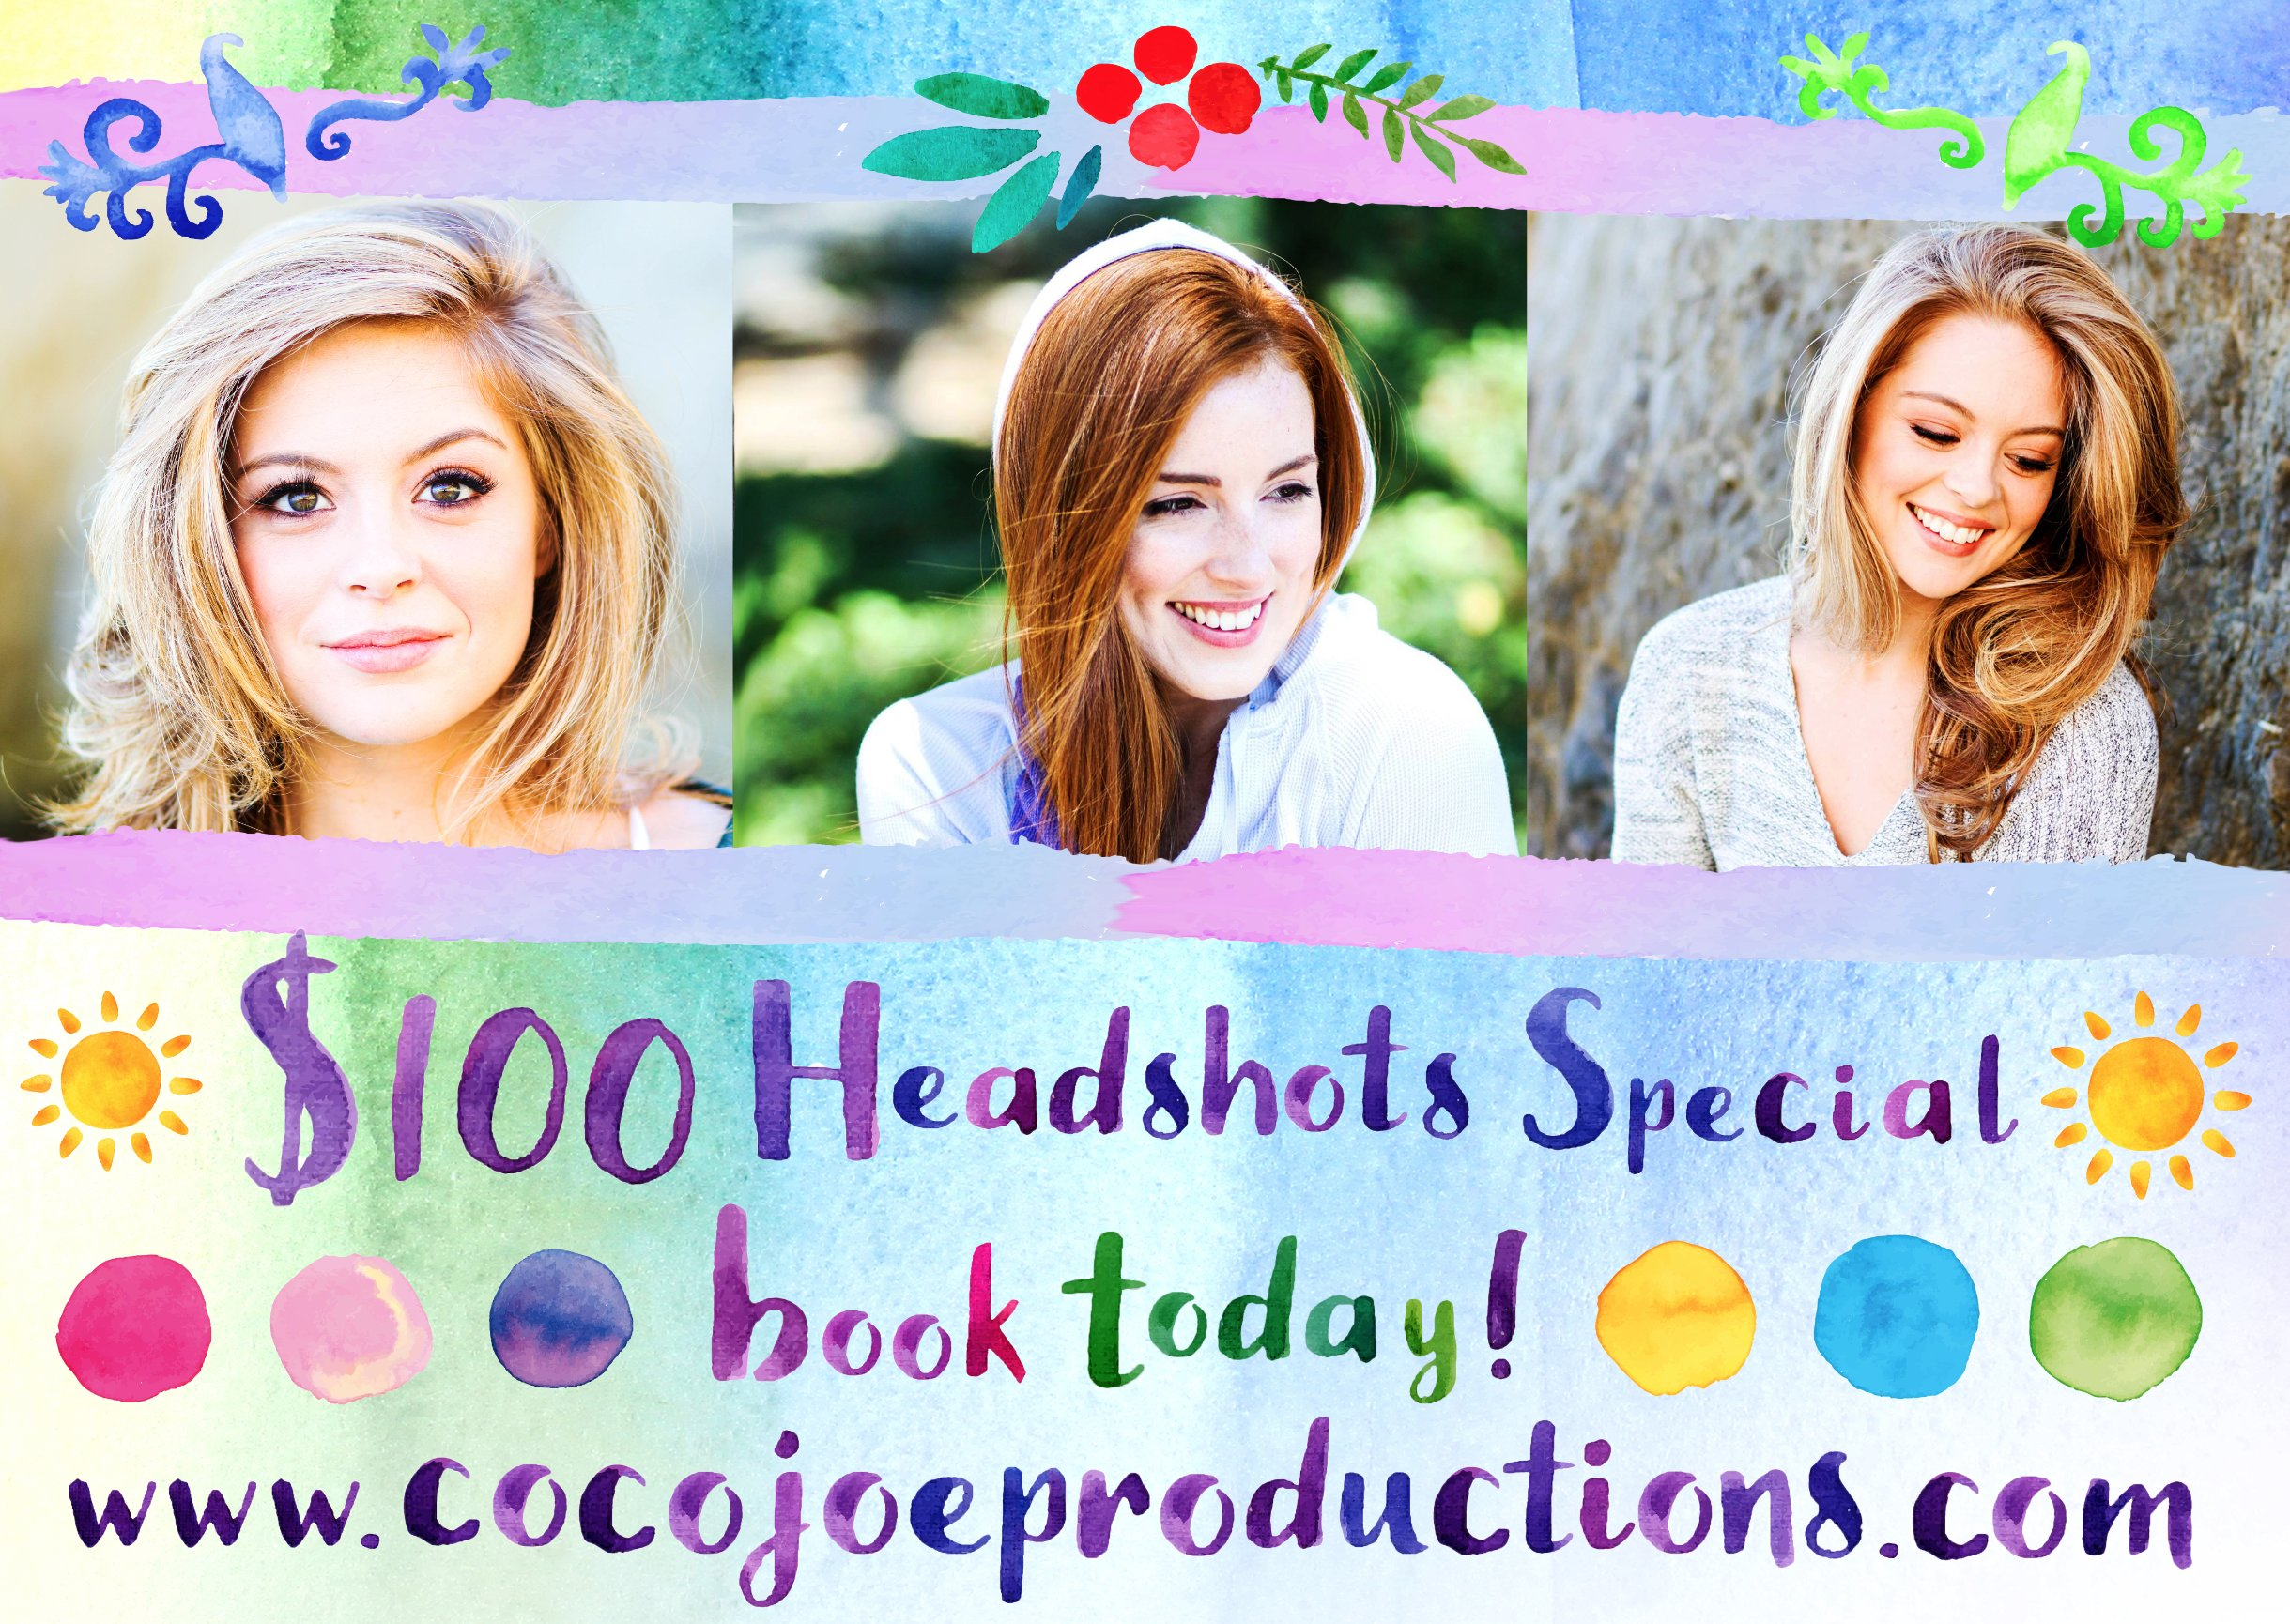 $100 Headshots Special - Los Angeles